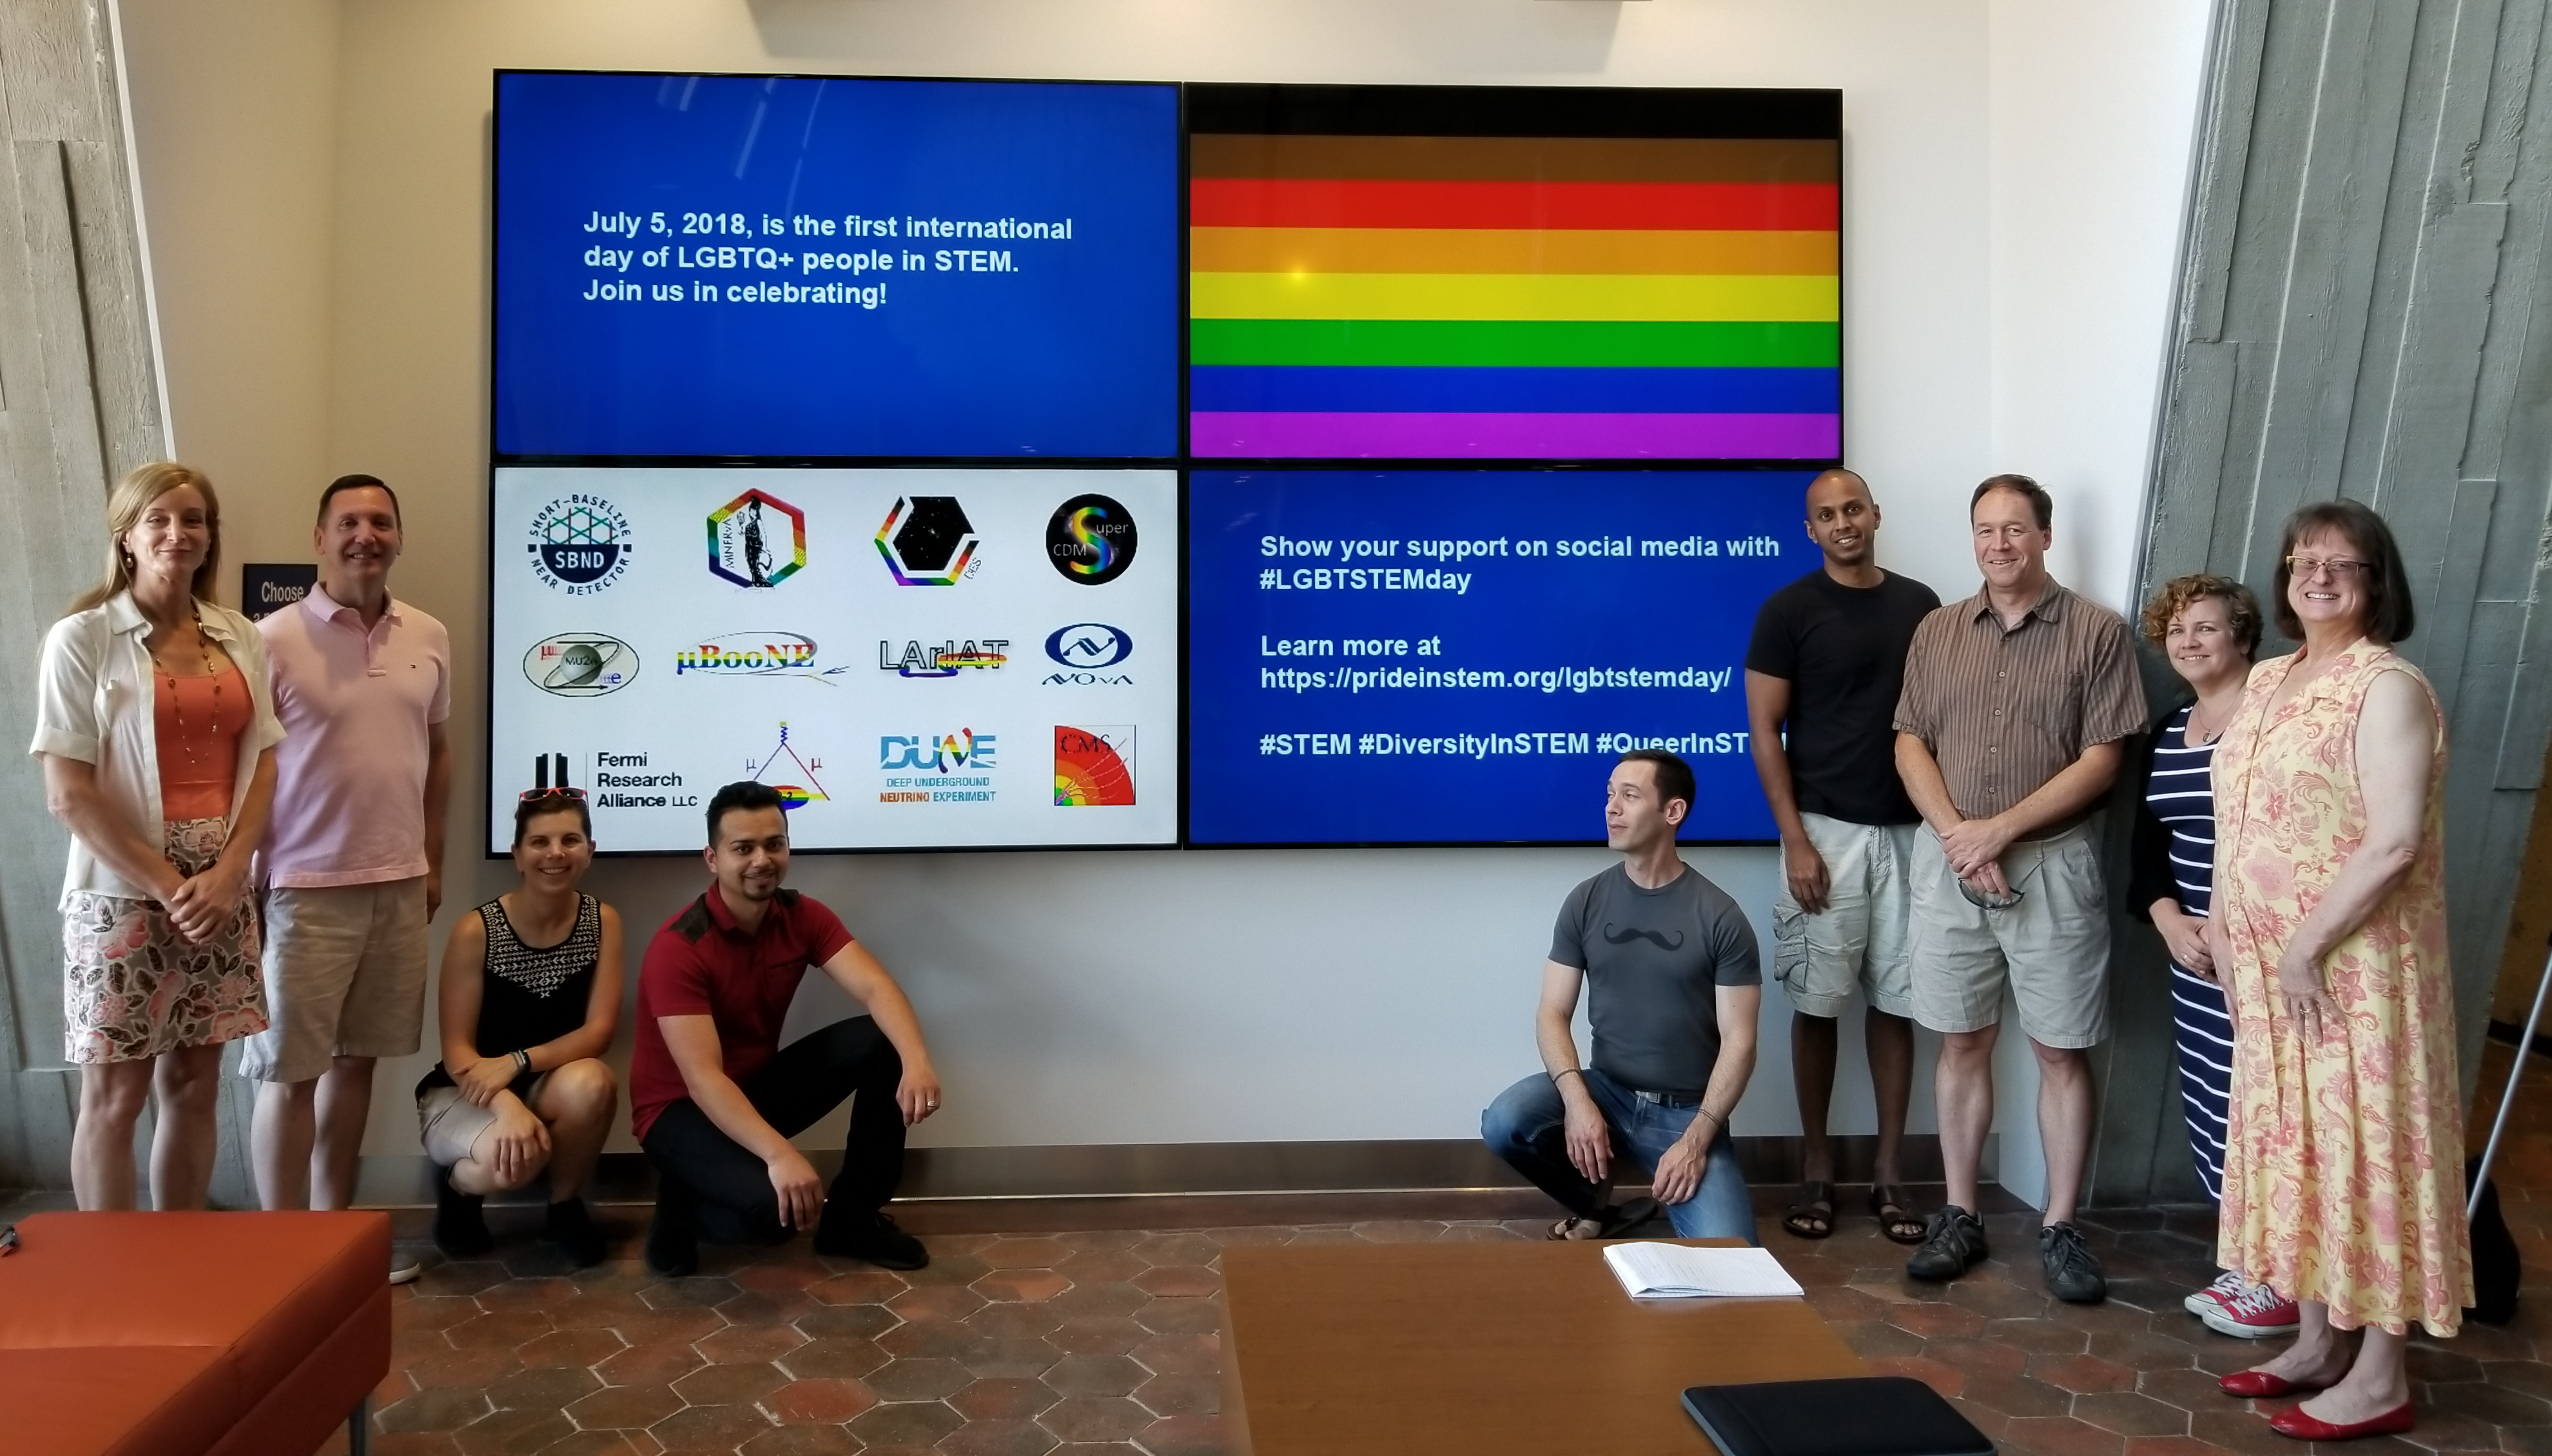 (1/3) Fermilab employees helping the lab celebrate the first International LGBTQ+ STEM Day. From left: Erica Snider, Pete Cholewinski, Lauren Biron, Mario Lucero, Jason St. John, Bo Jayatilaka, Eric Vaandering, Jen Raaf, Kathleen Bowers. Photo courtesy of Erica Snider, people, diversity, inclusion